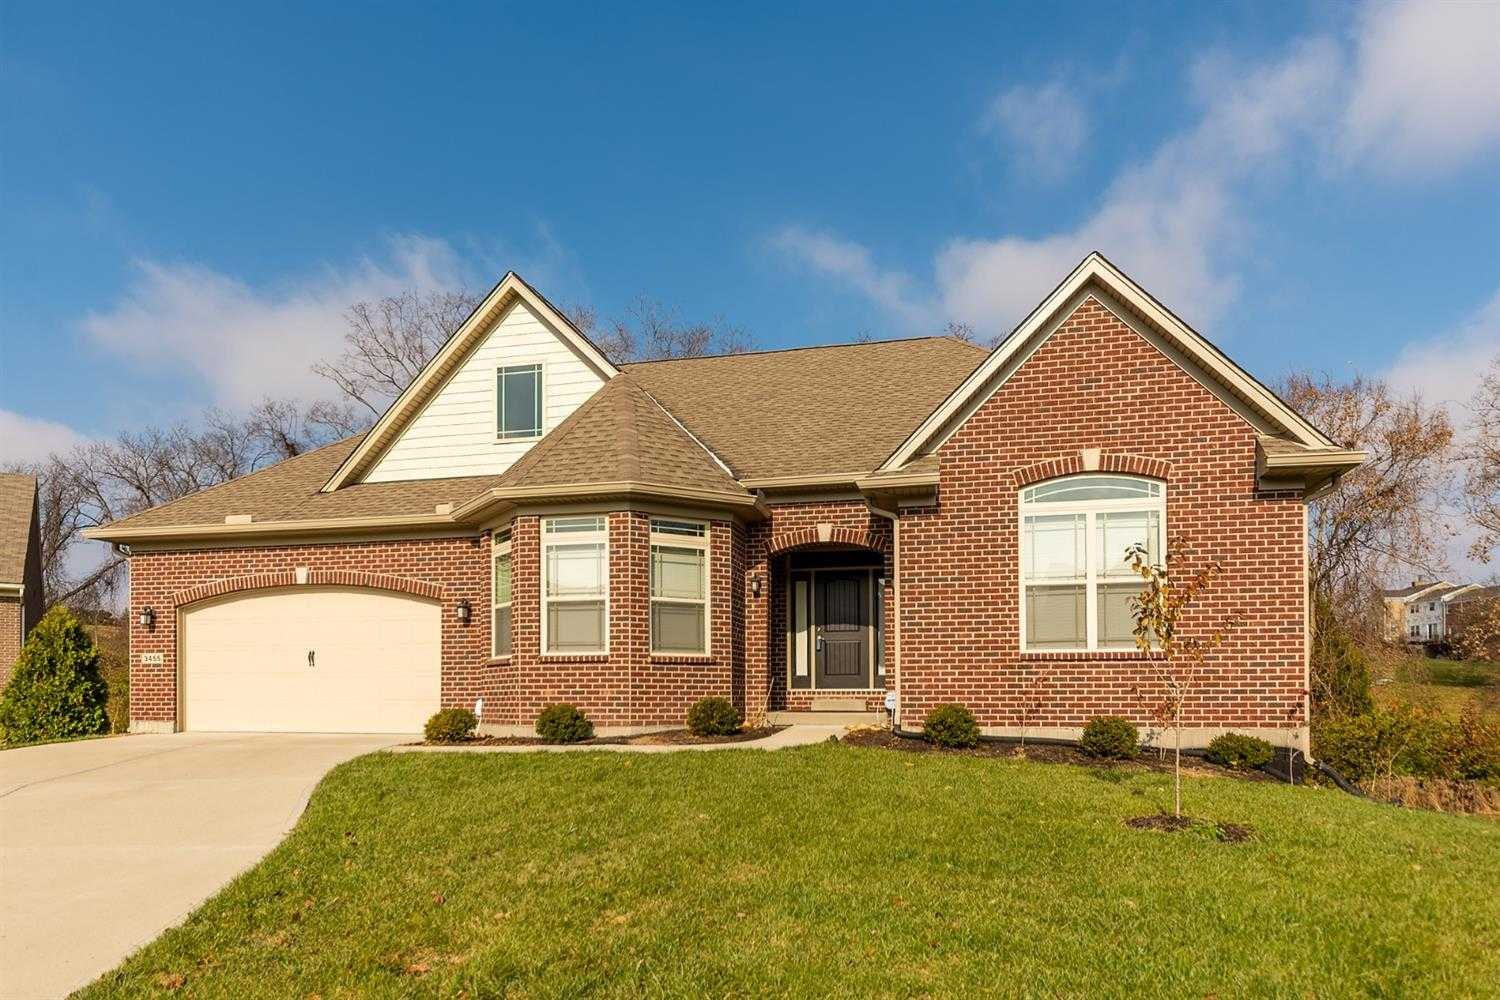 3455 Golfview Court Fairfield,OH 45014 1644875